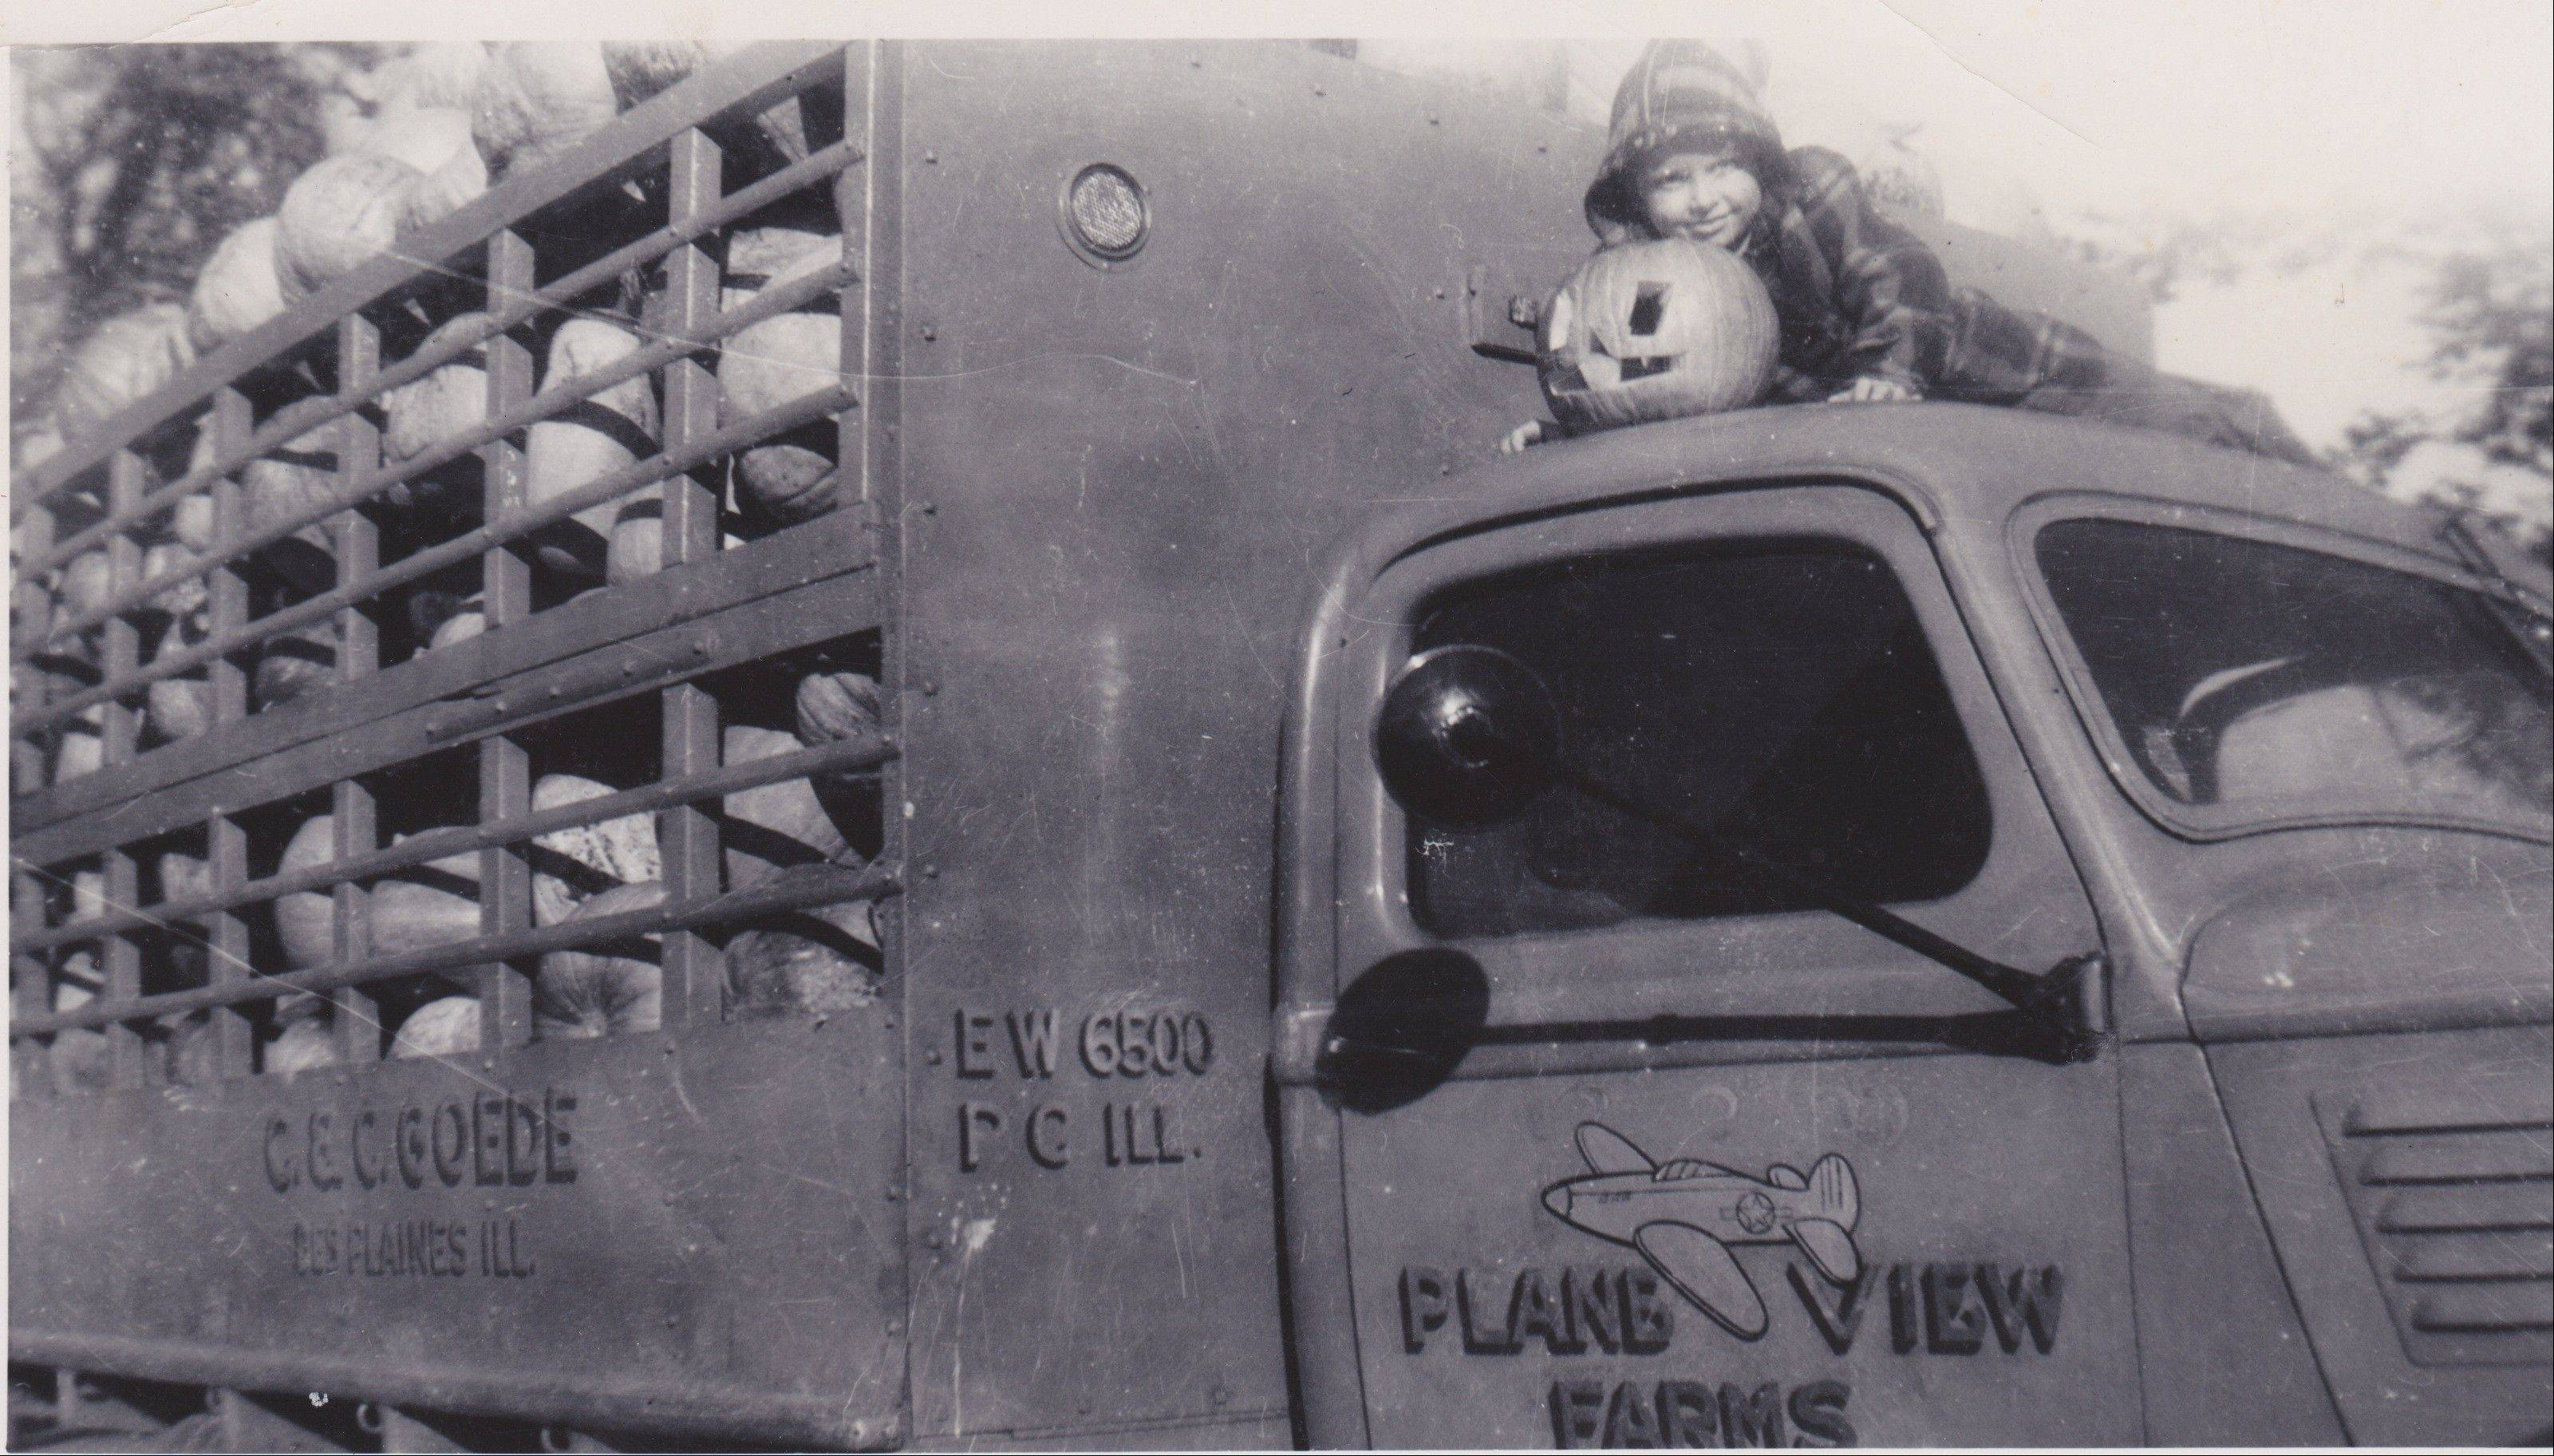 Wayne Goede, in 1942, with a carved pumpkin atop the farm truck.